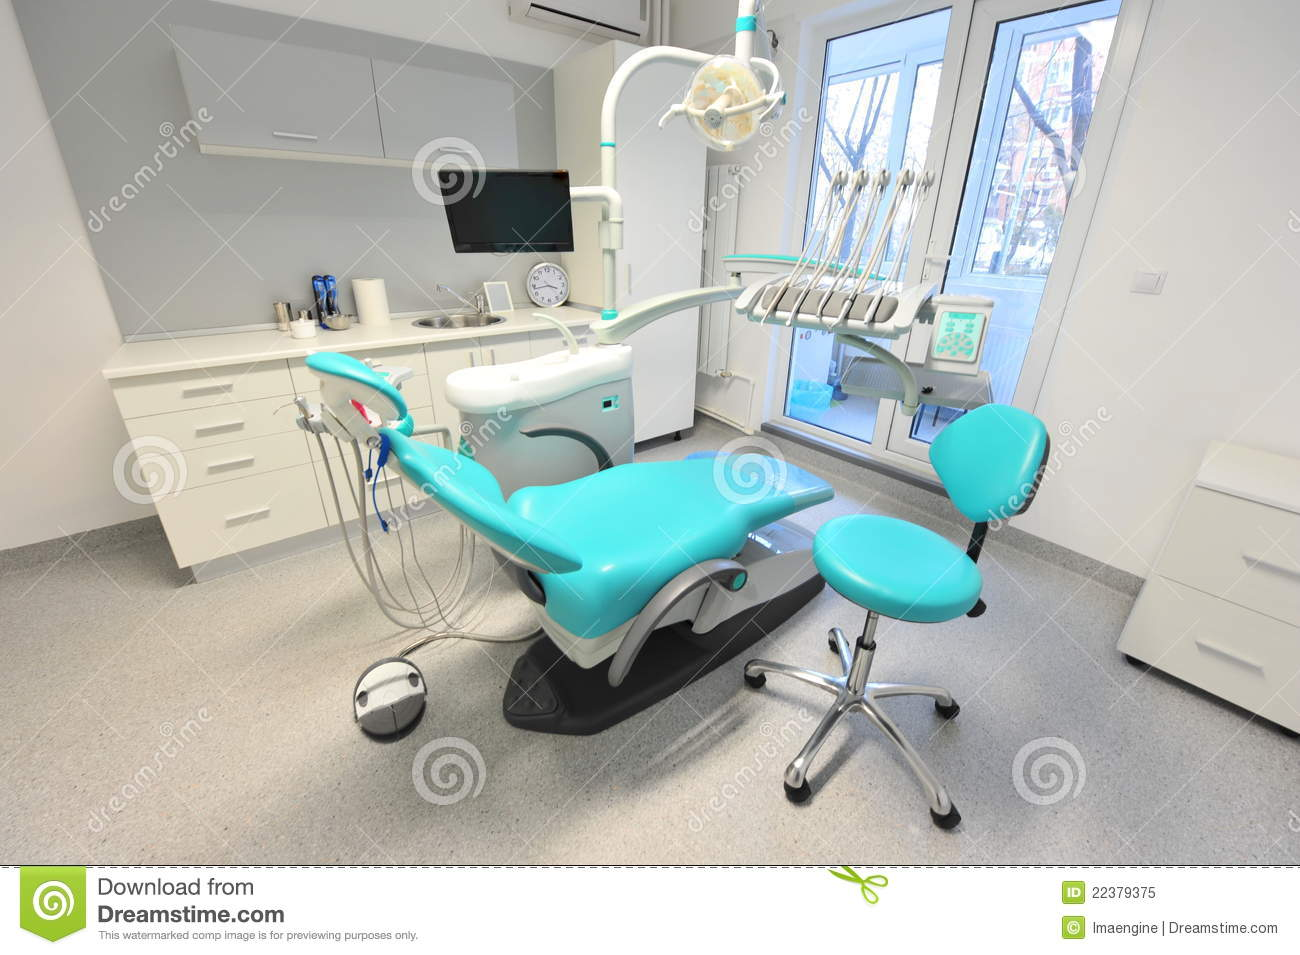 Stretch Pants For Large Shaped Pads furthermore Stock Illustration Modern Open Space Loft Office Concrete Floor Big Windows Pillars Image63701613 in addition Royalty Free Stock Photo High Tech Dentistry Tools Doctors Office Image22379375 besides Behold The Hi Tech Aircraft Seat Built For Gamers Not For Wimps besides 3106 Margaret River Chair Hire. on travel high chair